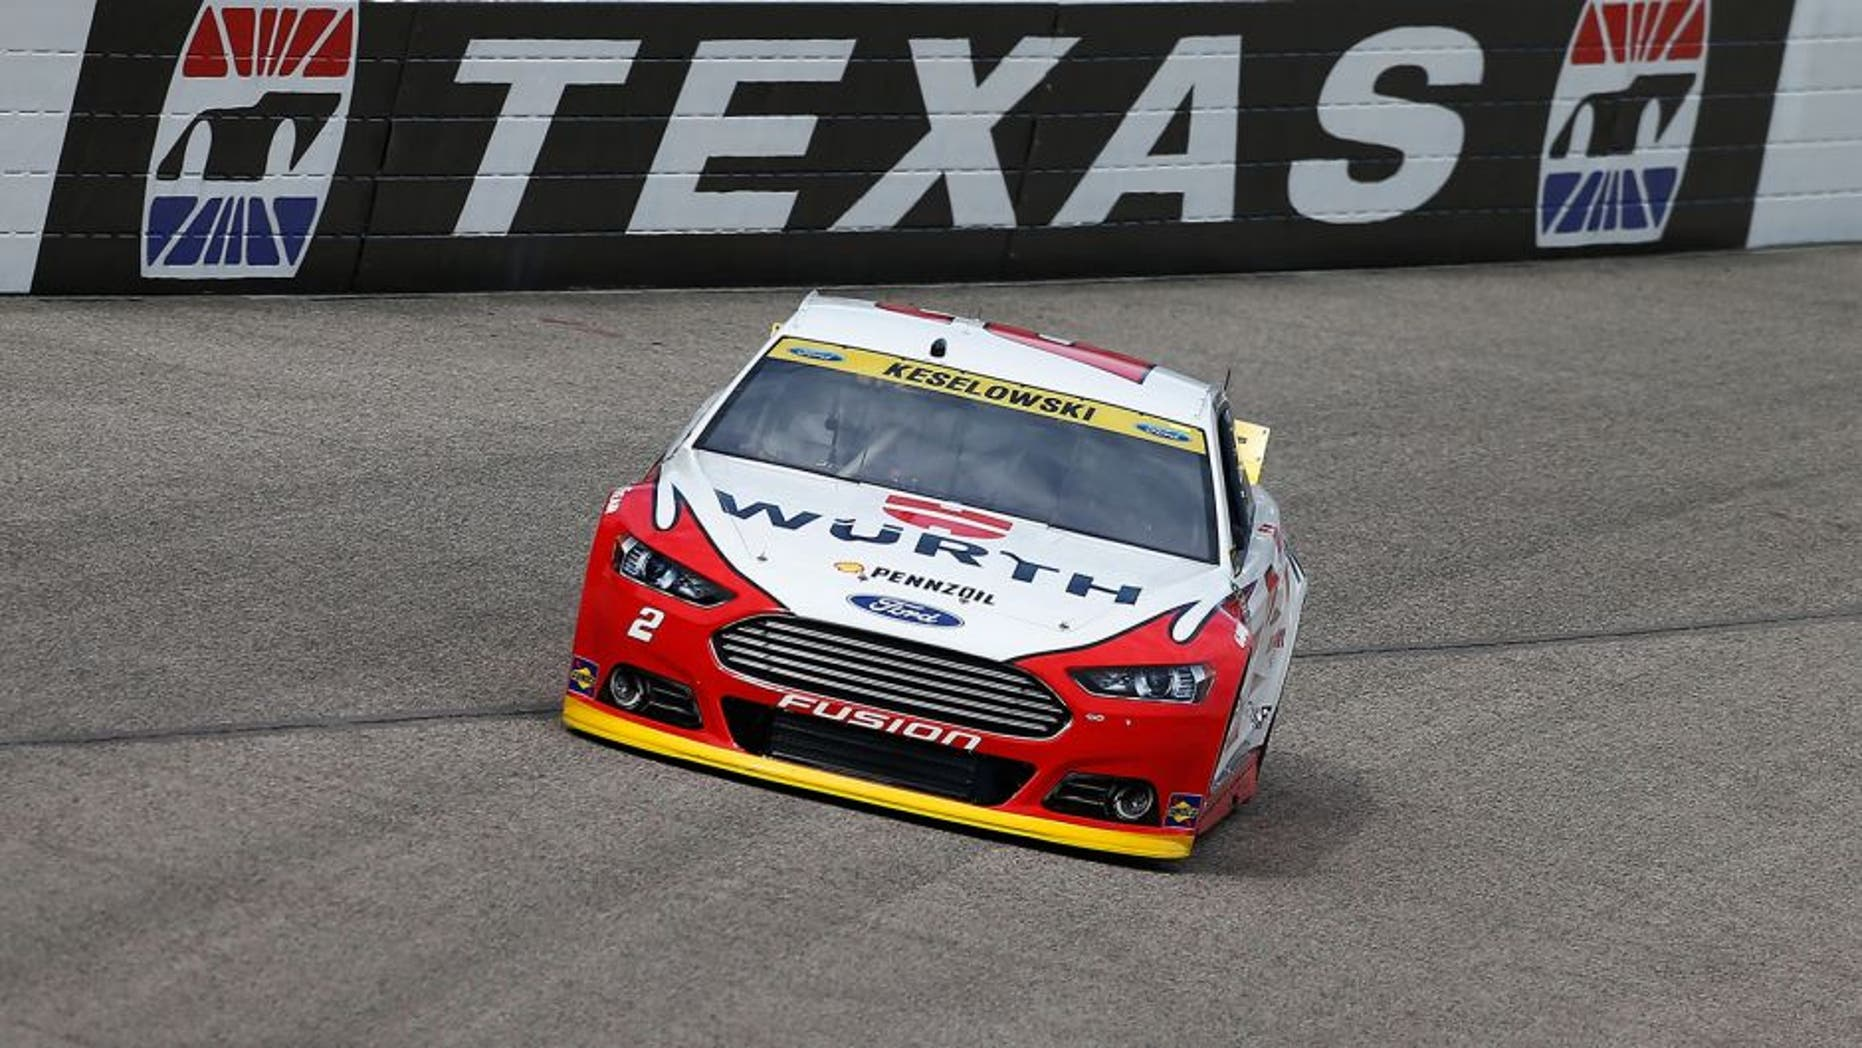 FORT WORTH, TX - NOVEMBER 06: Brad Keselowski, driver of the #2 Wurth Ford, practices for the NASCAR Sprint Cup Series AAA Texas 500 at Texas Motor Speedway on November 6, 2015 in Fort Worth, Texas. (Photo by Jonathan Ferrey/Getty Images for Texas Motor Speedway)